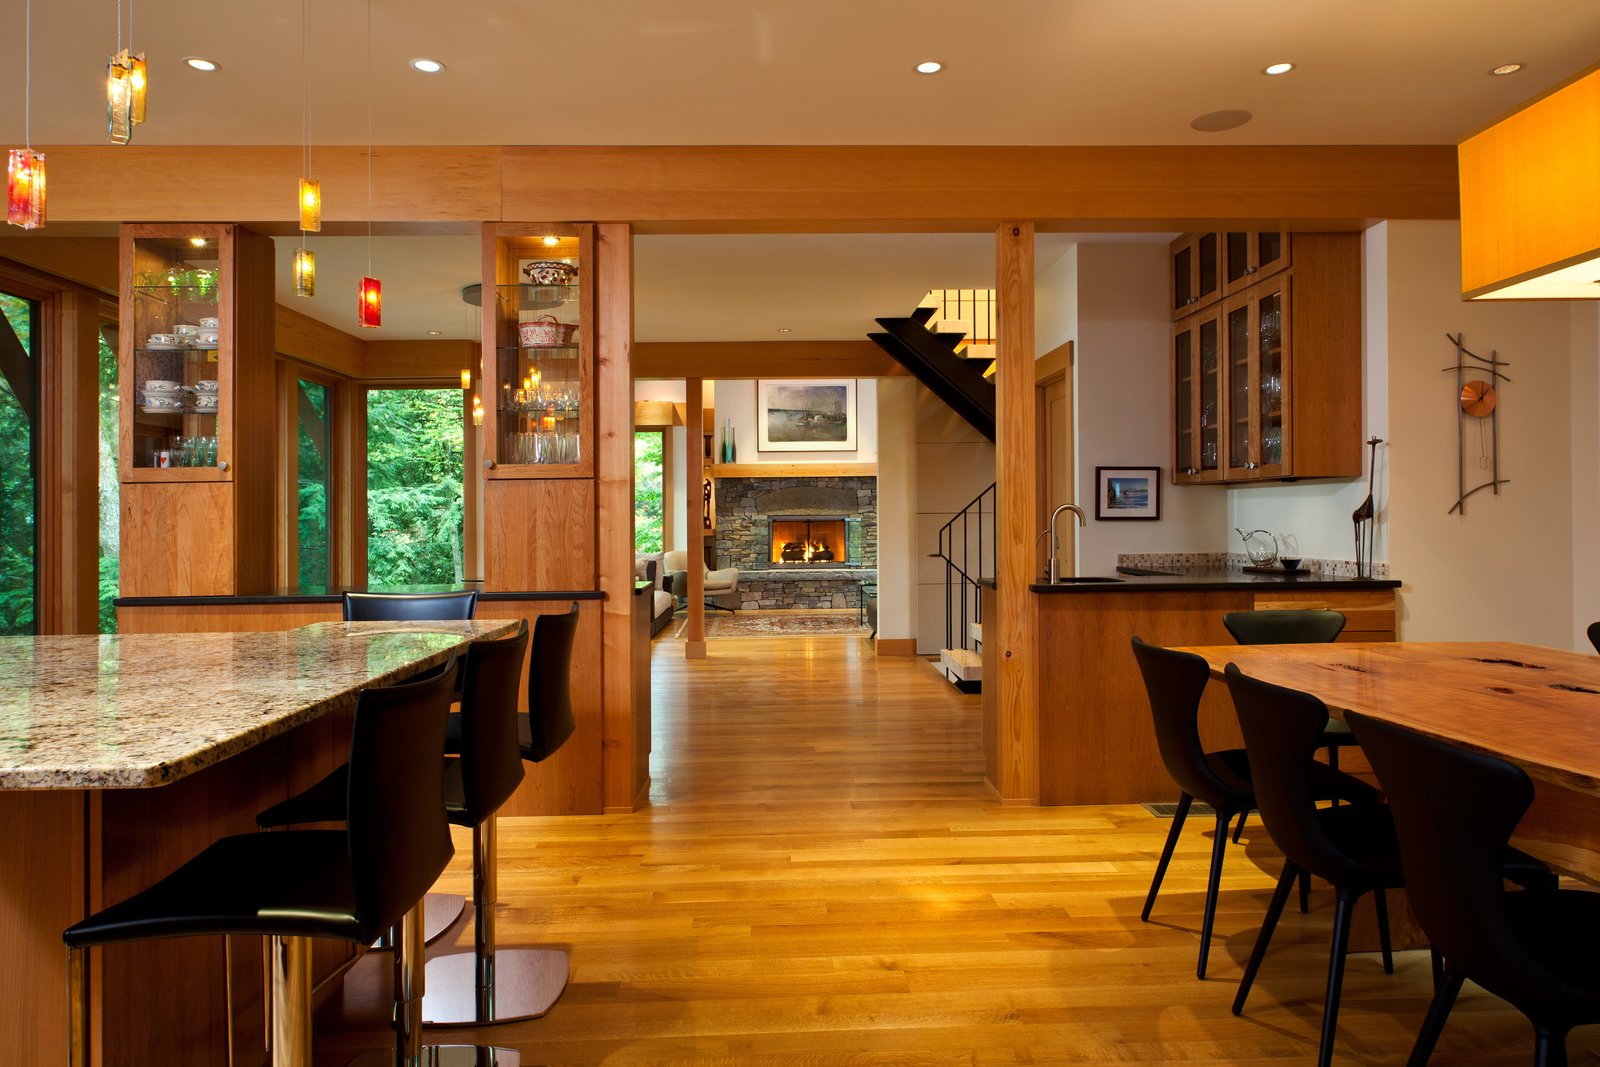 Open floorplan of house - kitchen, dining area, living room  Fourth Lake Summer House by Phinney Design Group